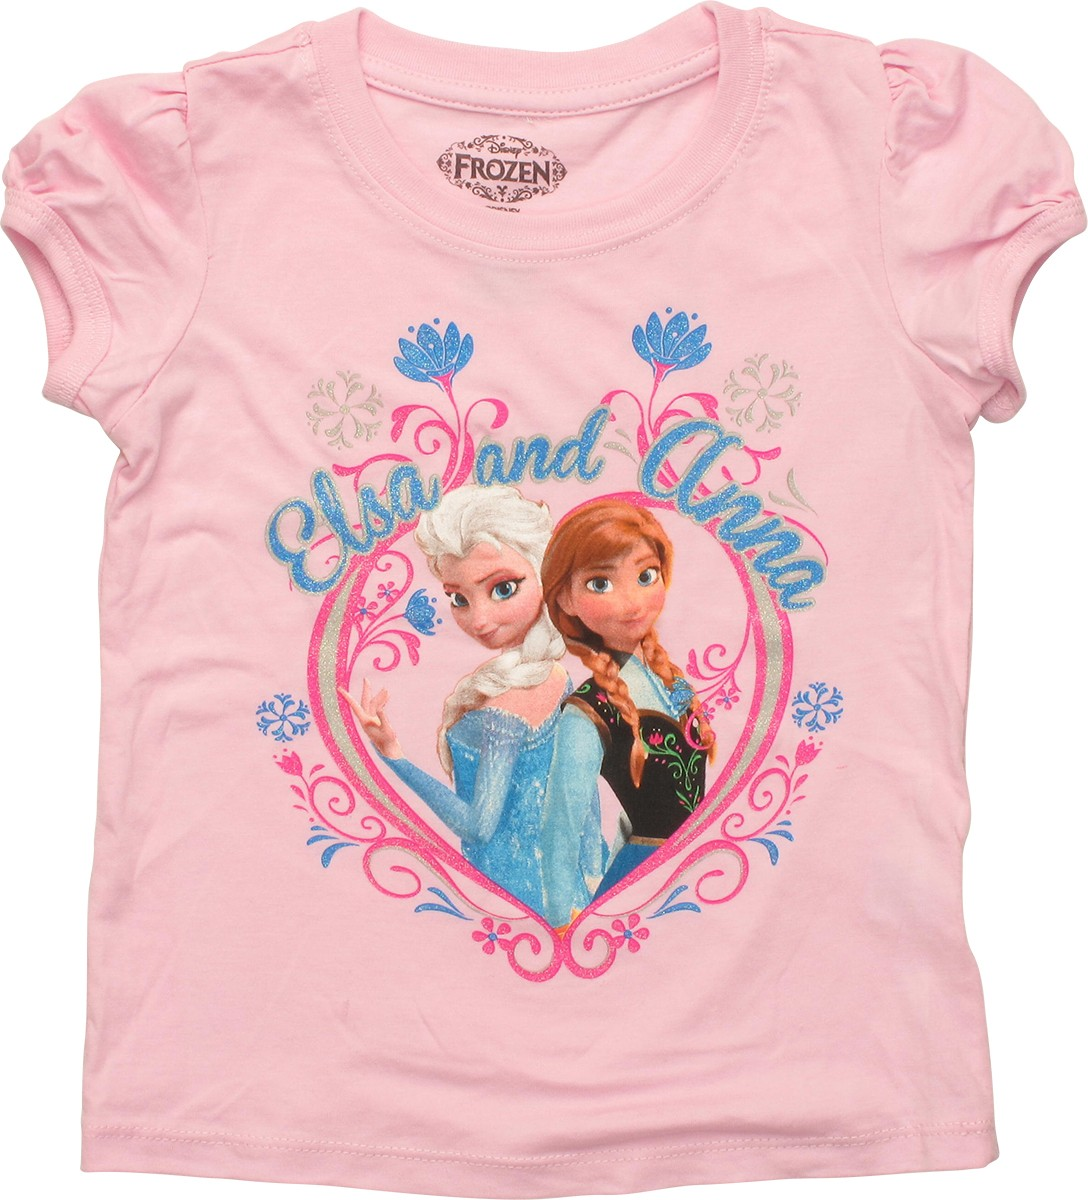 This Frozen shirt features an image of Olaf, the clumsy snowman who was magically brought to life by Elsa in the hugely successful Disney film. Olaf is surrounded by sparkling snowflakes. This is a girls shirt, the perfect size for those little ones who dream of one day being Anna or the Snow Queen Elsa.